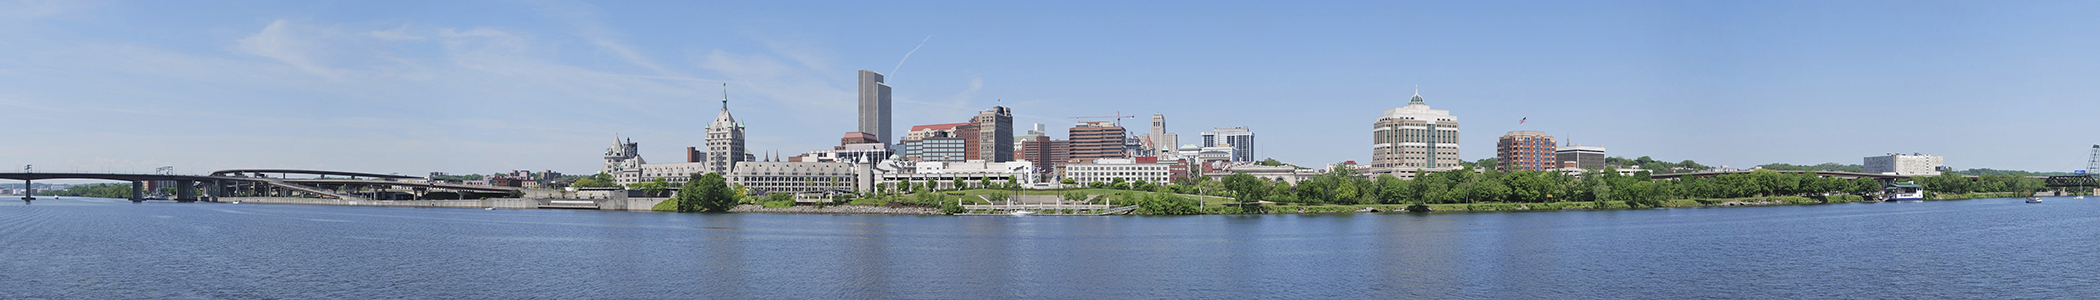 Albany new york wikivoyage guida turistica di viaggio for Dove alloggiare new york